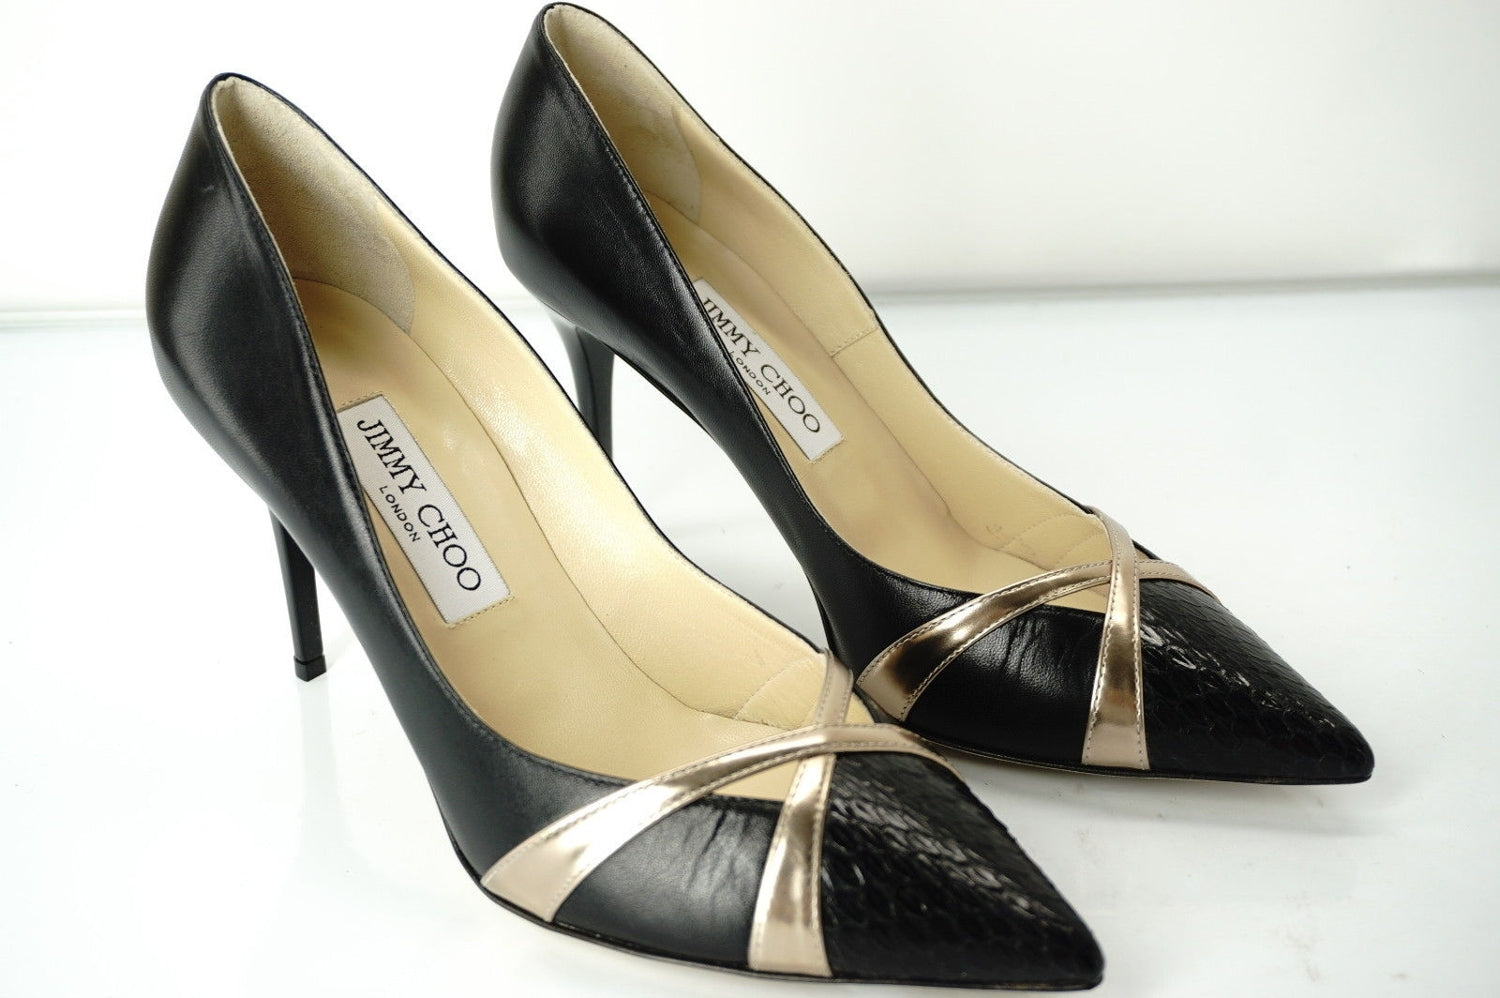 Jimmy Choo Gold Criss Haxeel Pointed Toe Heel Formal Pumps Size 38.5 NIB $795